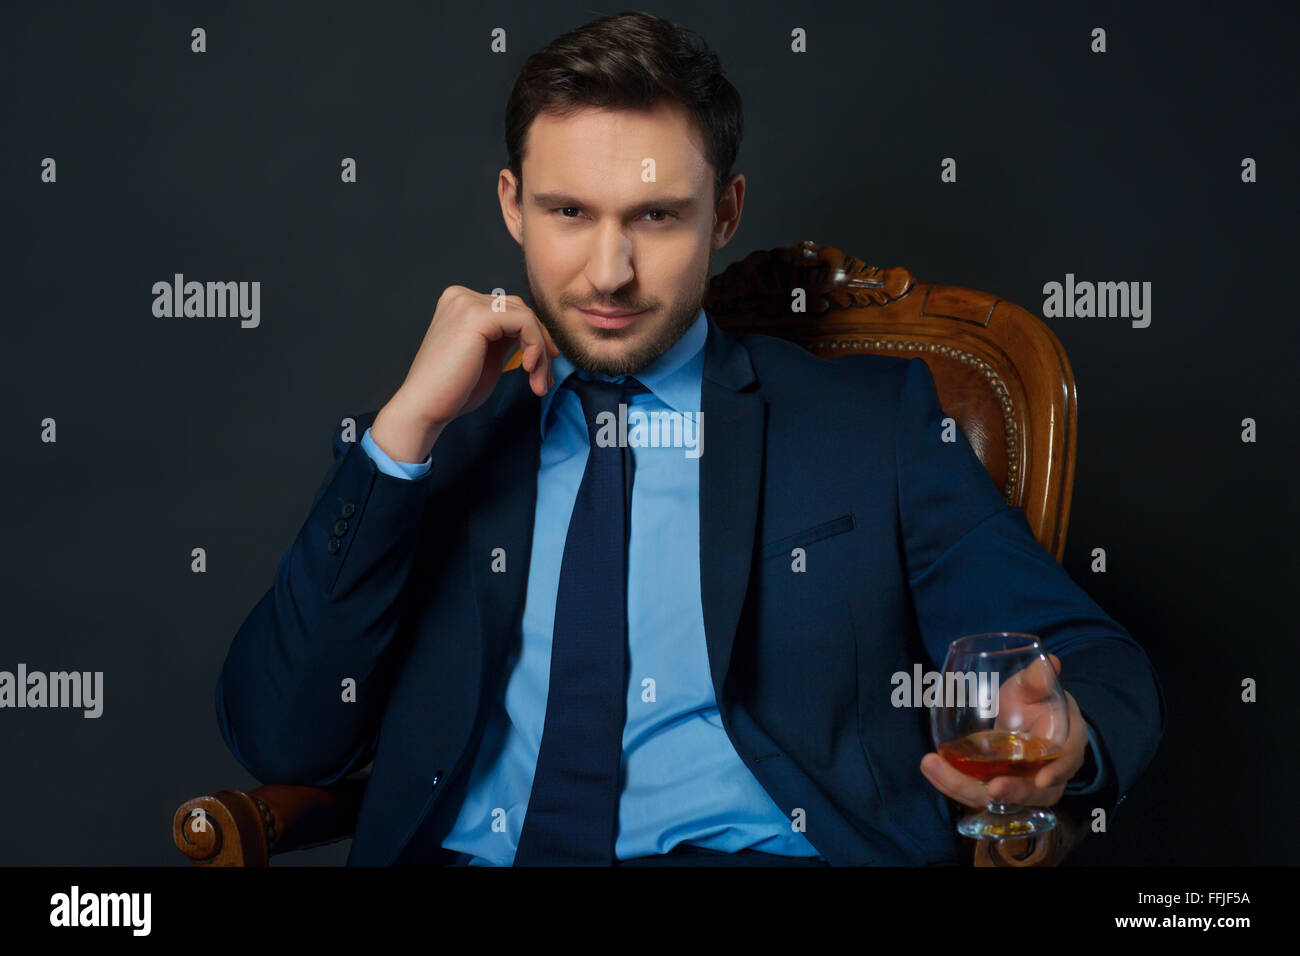 Handsome businessman drinking alcohol - Stock Image